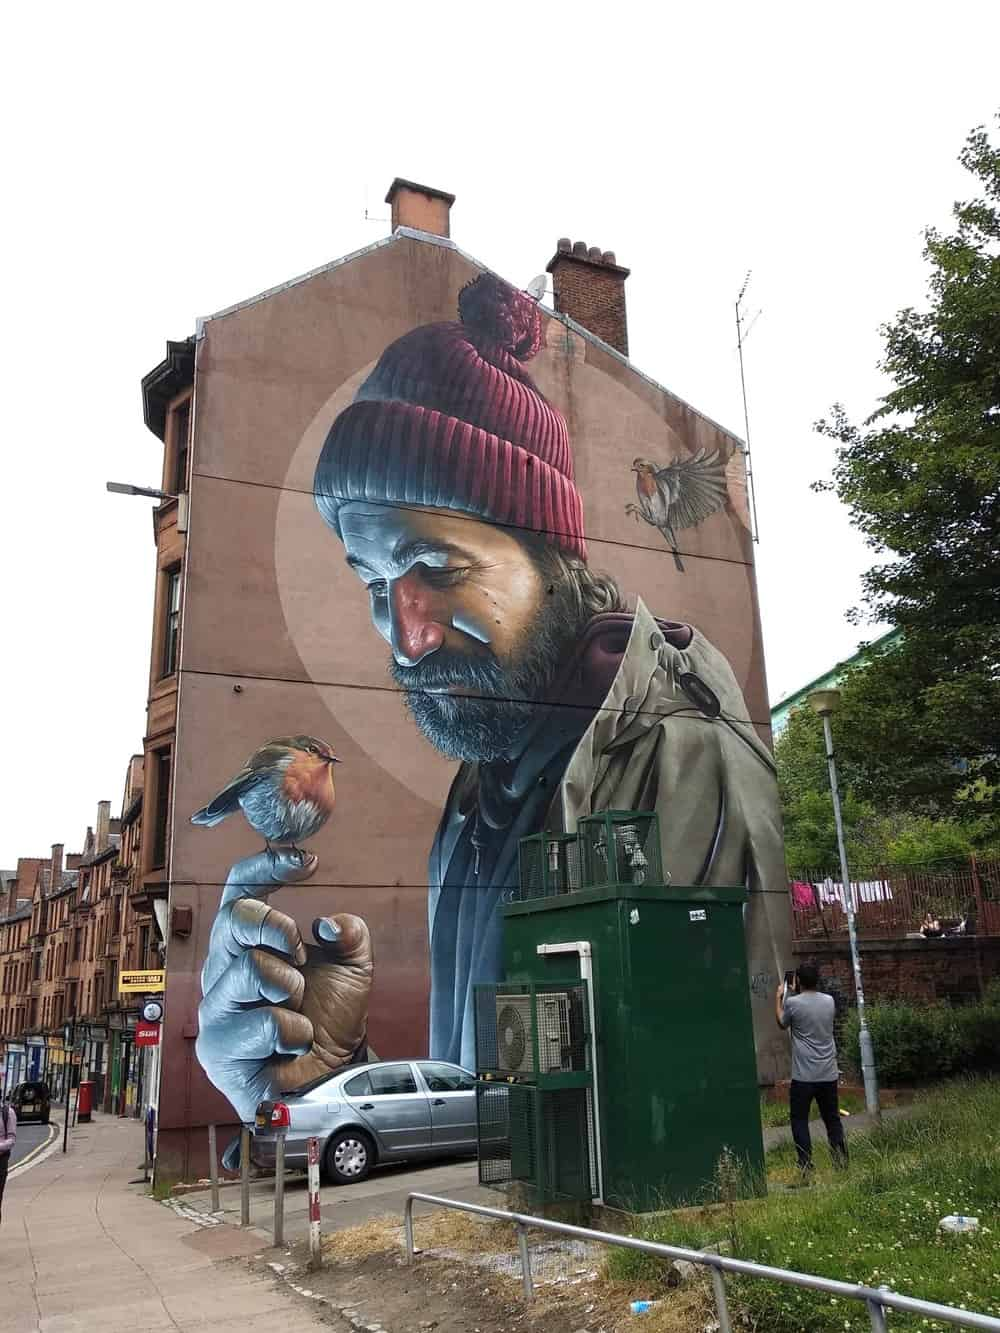 Street art in gLASGOW 2